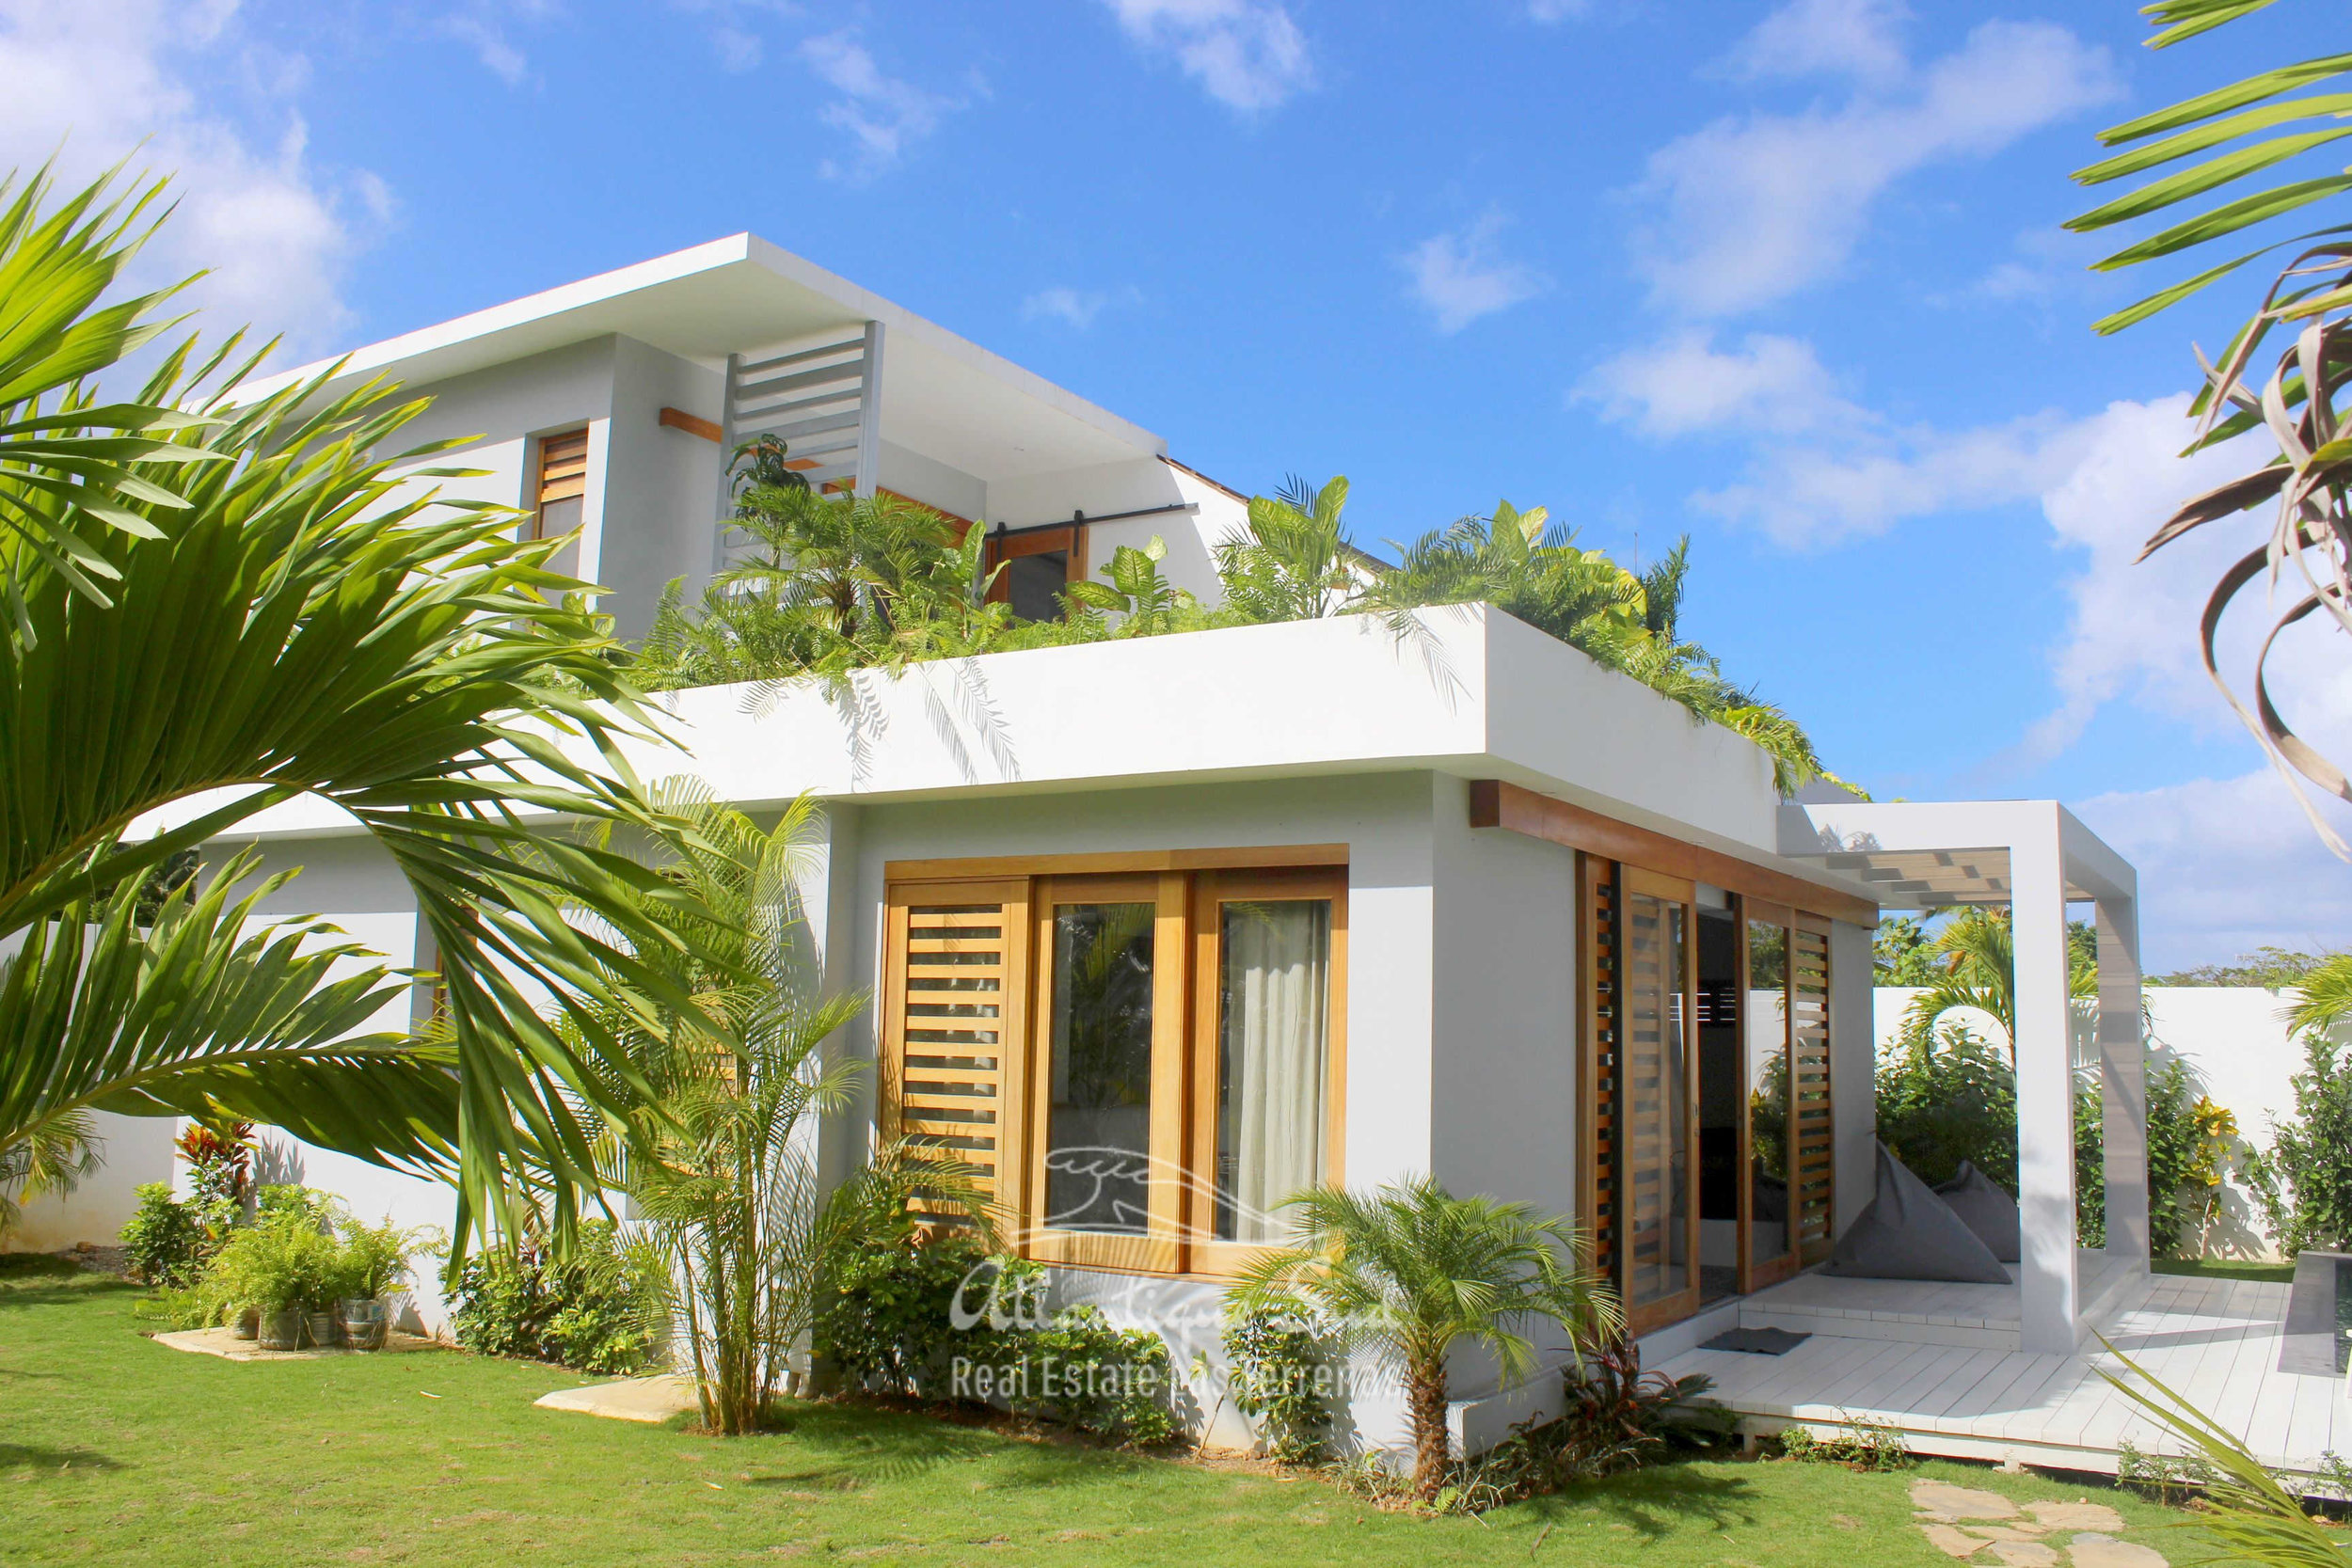 Villa for sale in Las Terrenas - Pran26.jpg